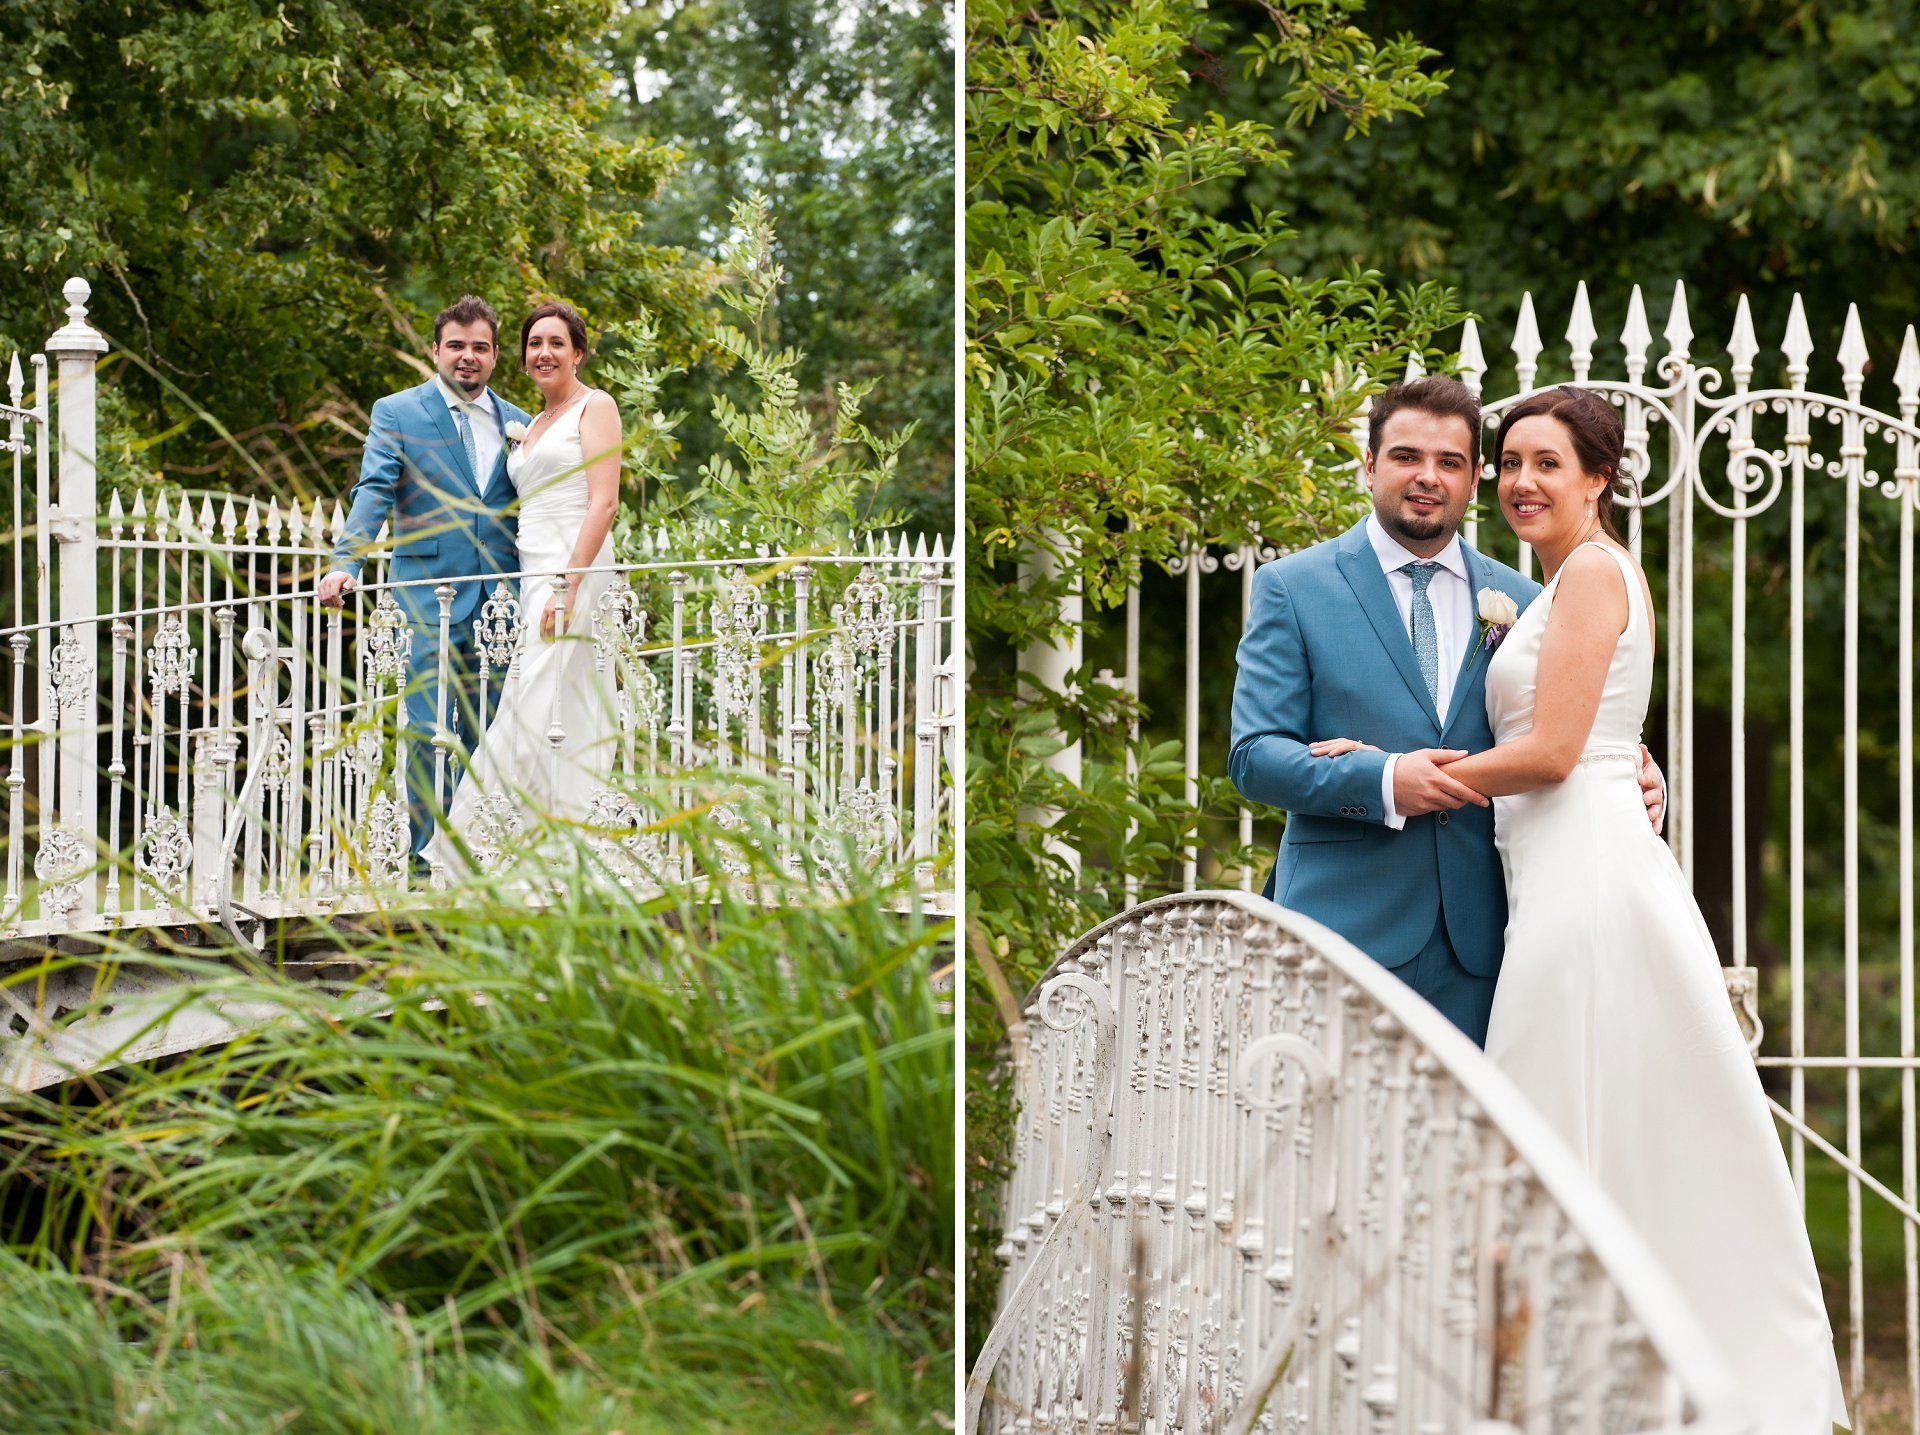 The little white bridge at Morden Hall is perfect for briade and groom photos